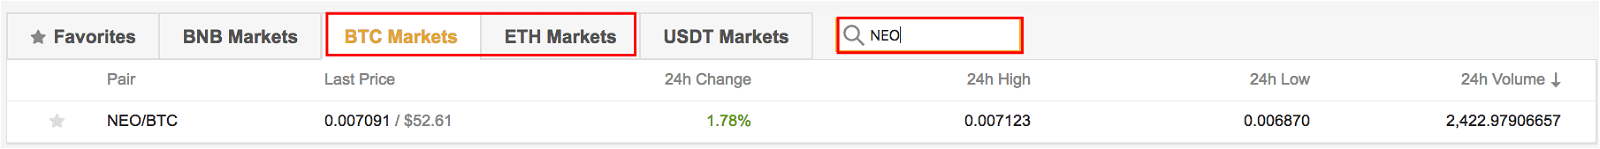 How to find NEO markets on Binance cryptocurrency exchange